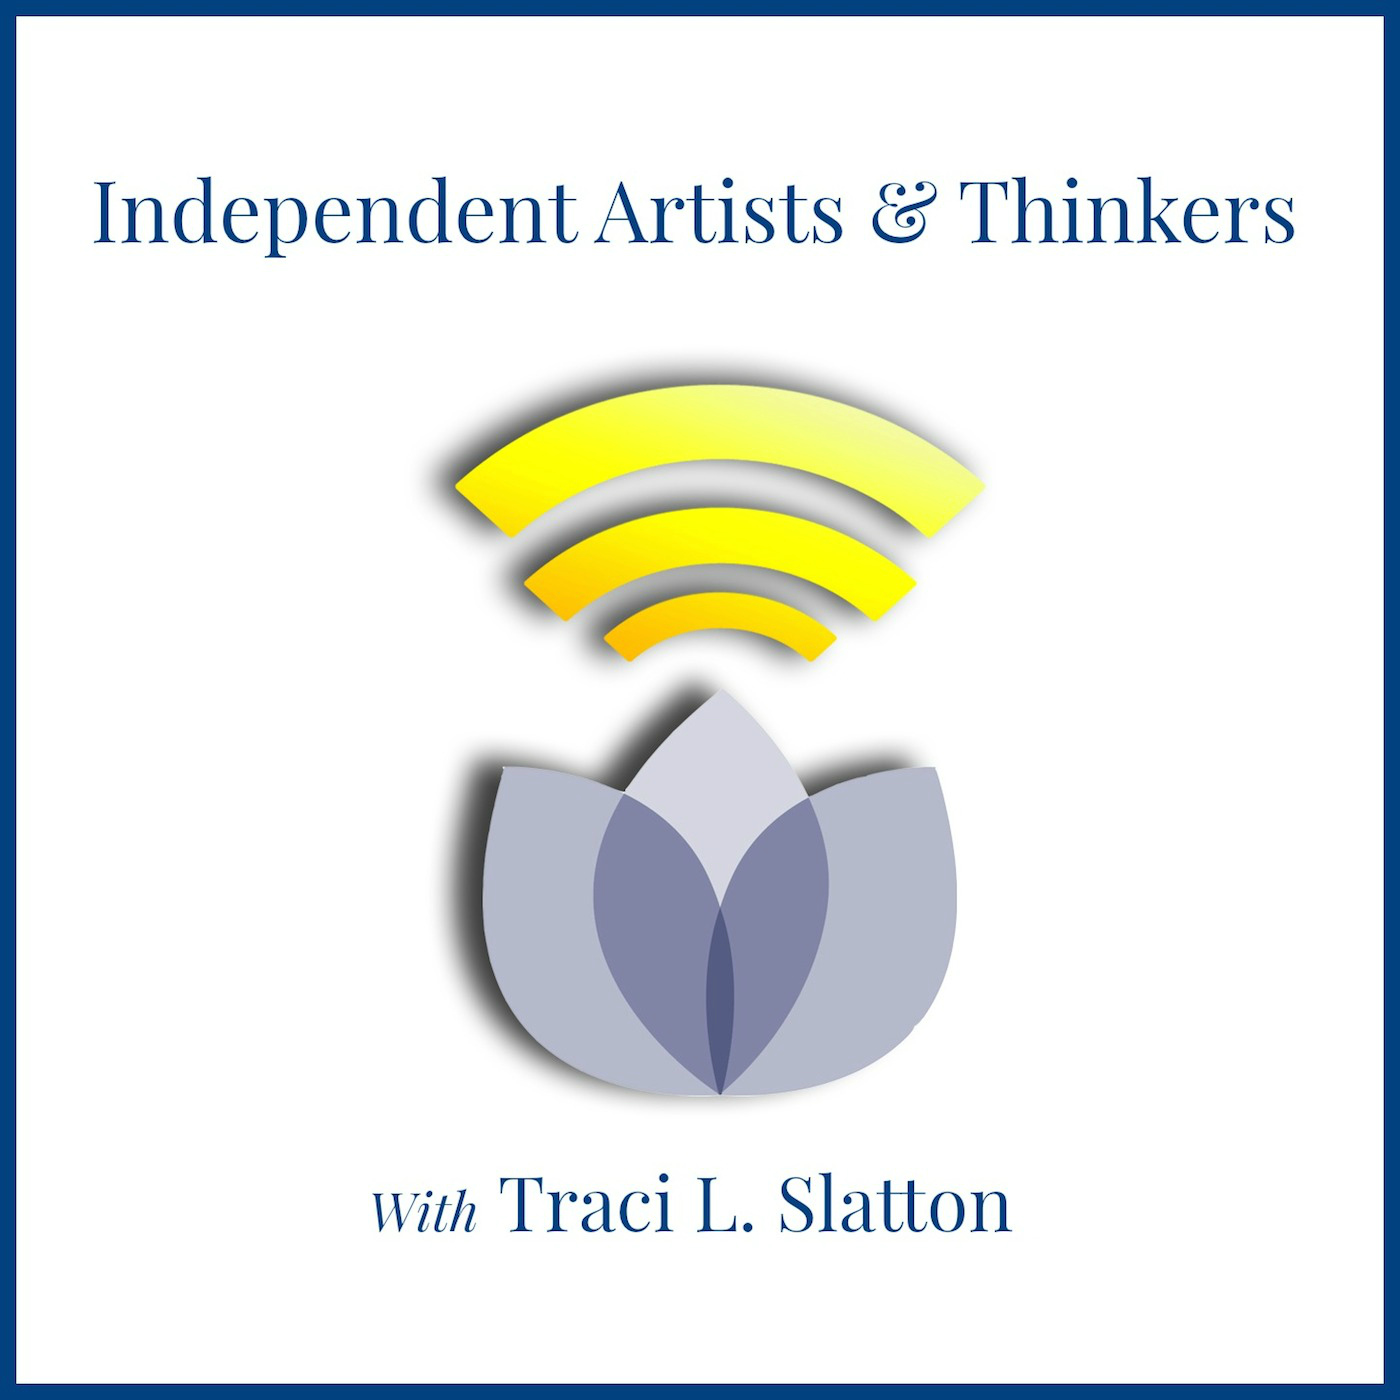 Recent Independent Artists & Thinkers BTR shows I enjoyed